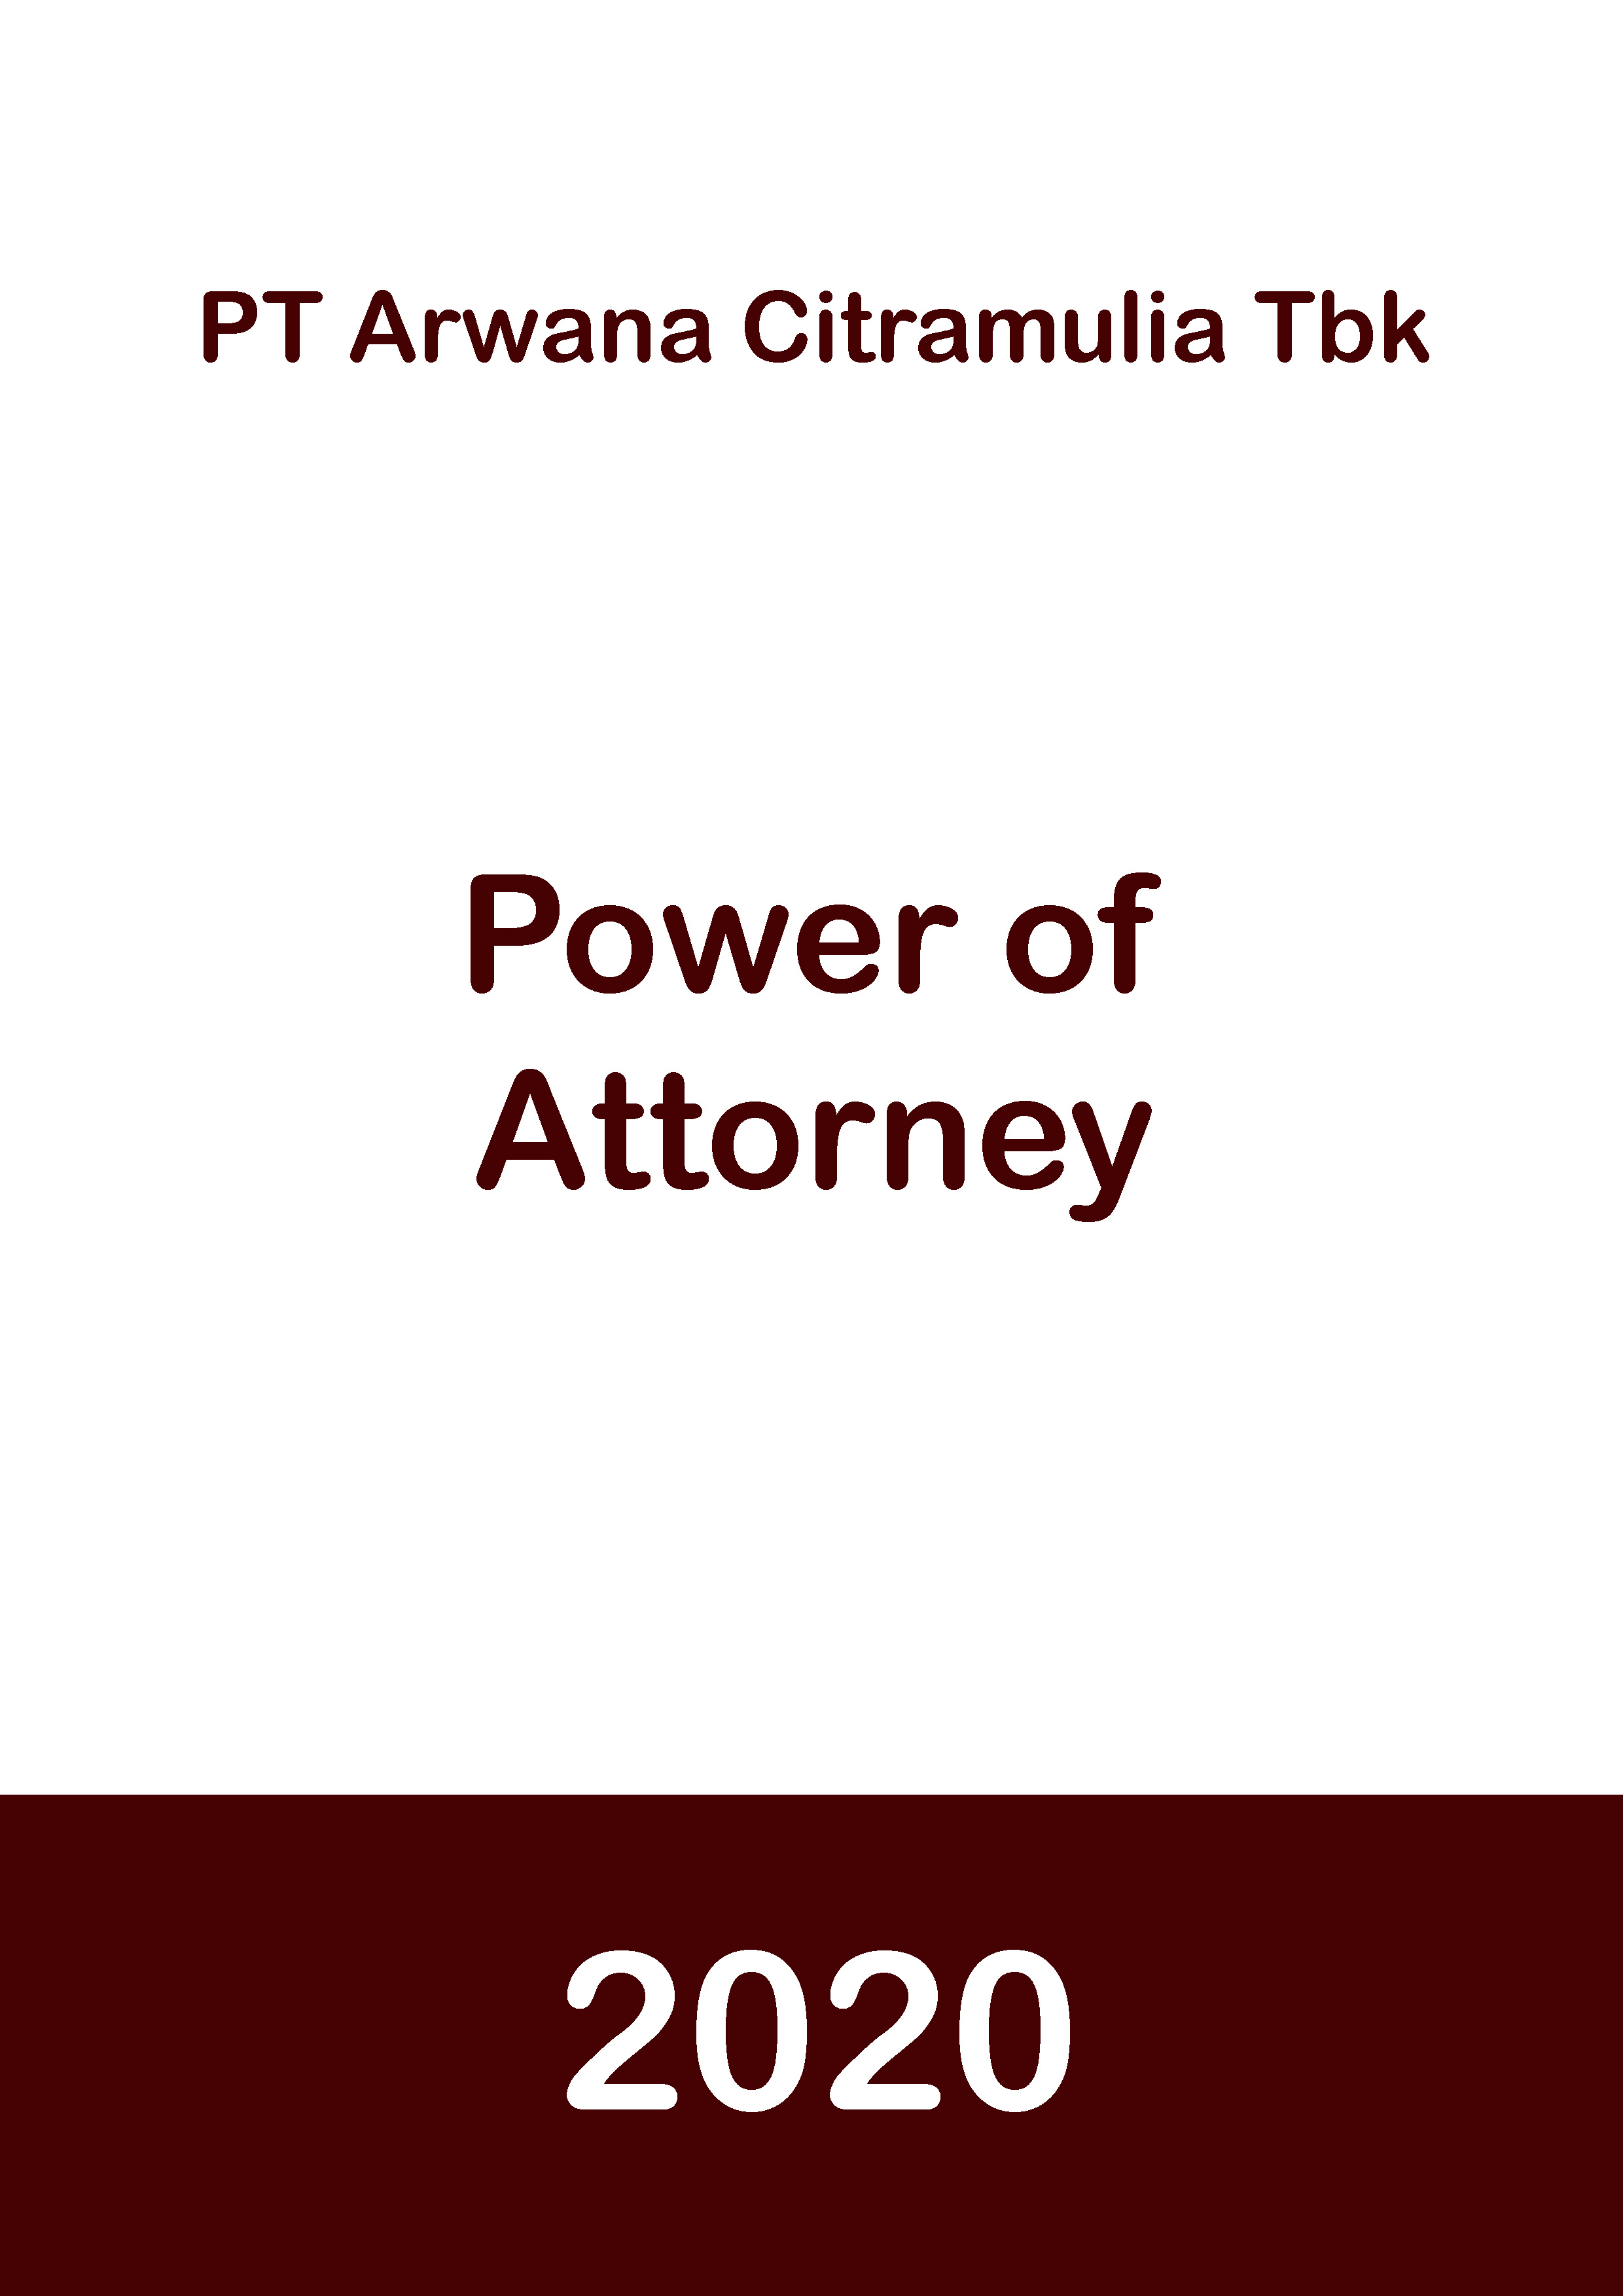 Power of Attorney 2020